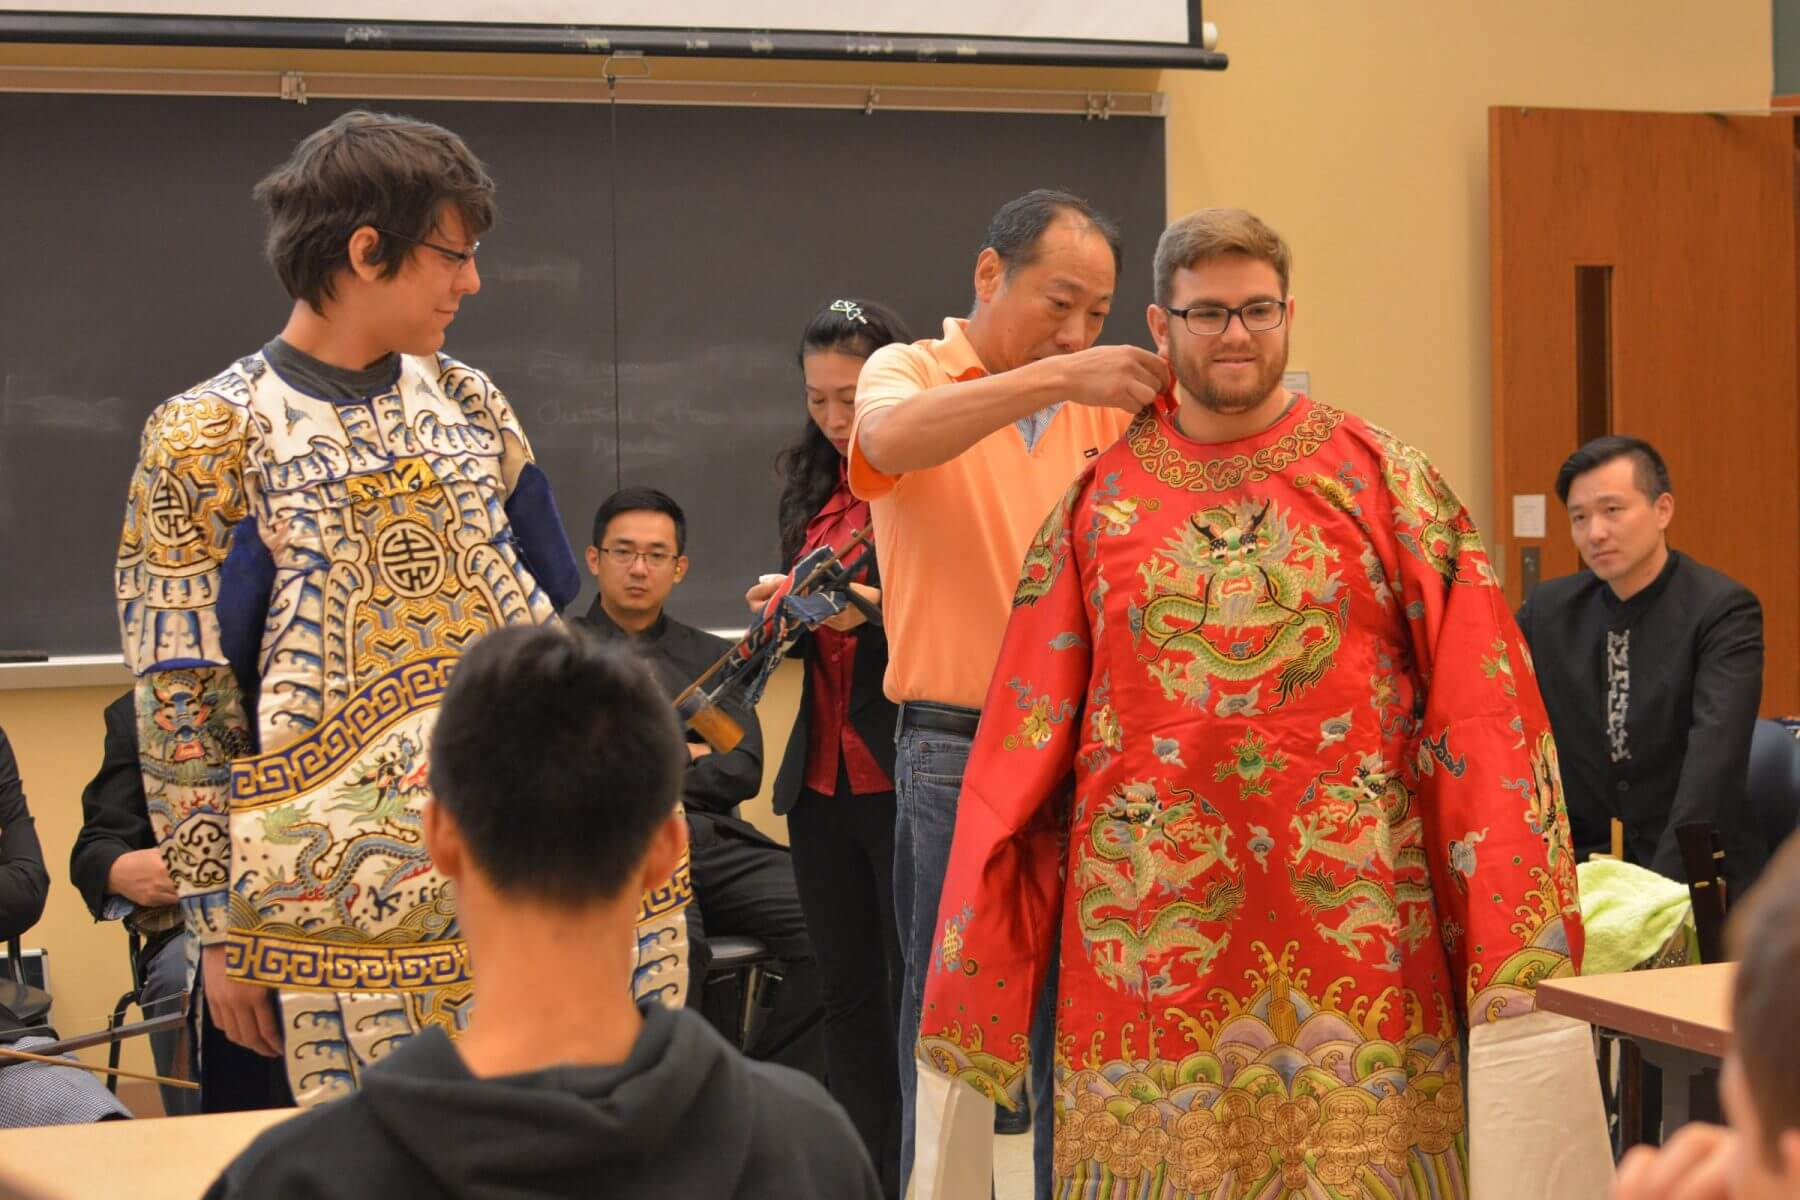 Members of Shanghai Jingju Theatre Company dress Purdue students in Peking Opera costumes